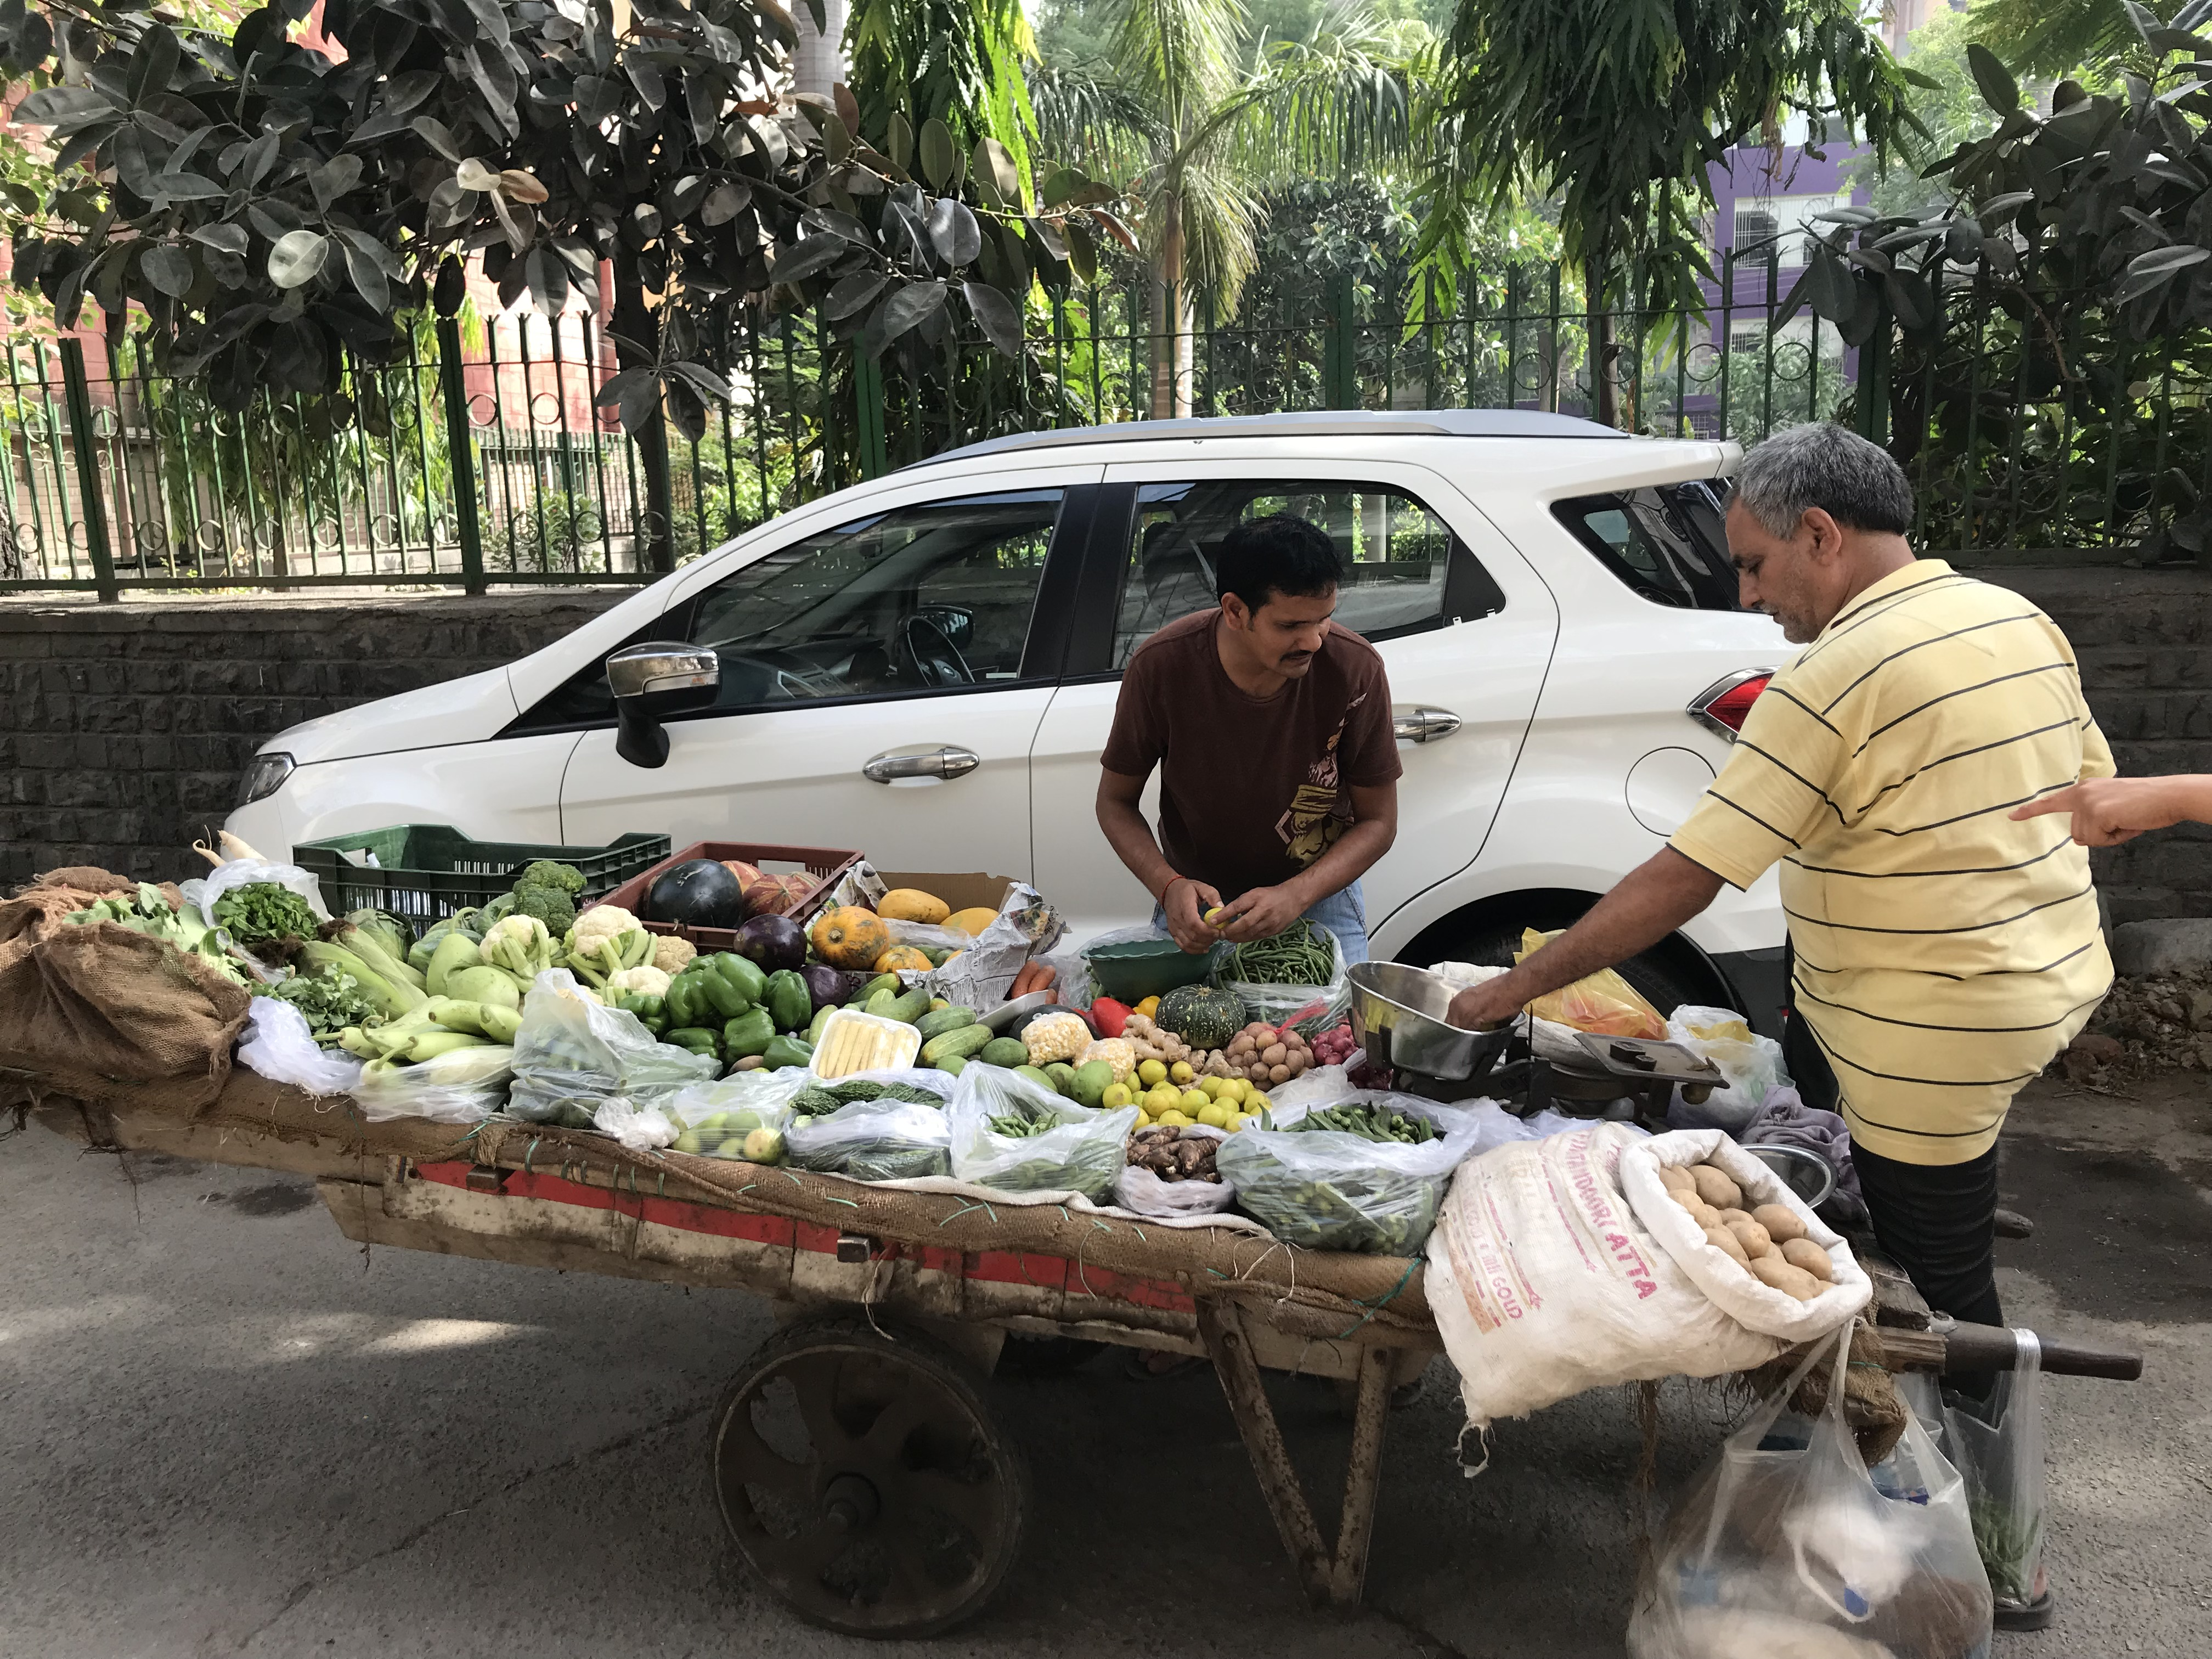 Delhi India vegetable stand